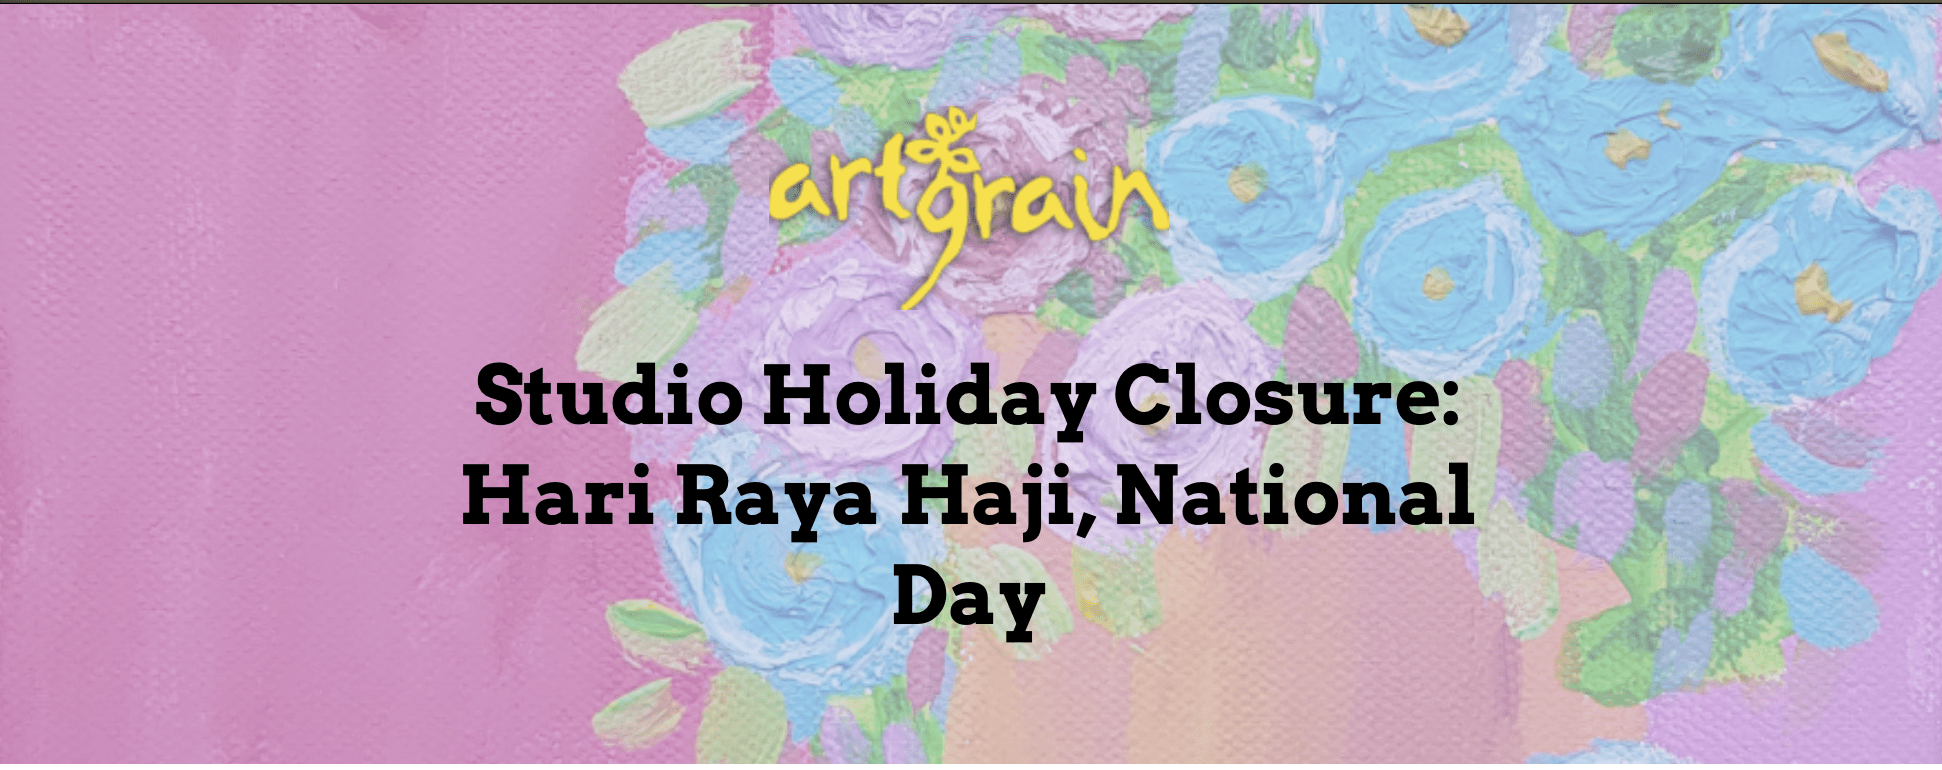 Studio Holiday Closure: Hari Raya Haji and National Day